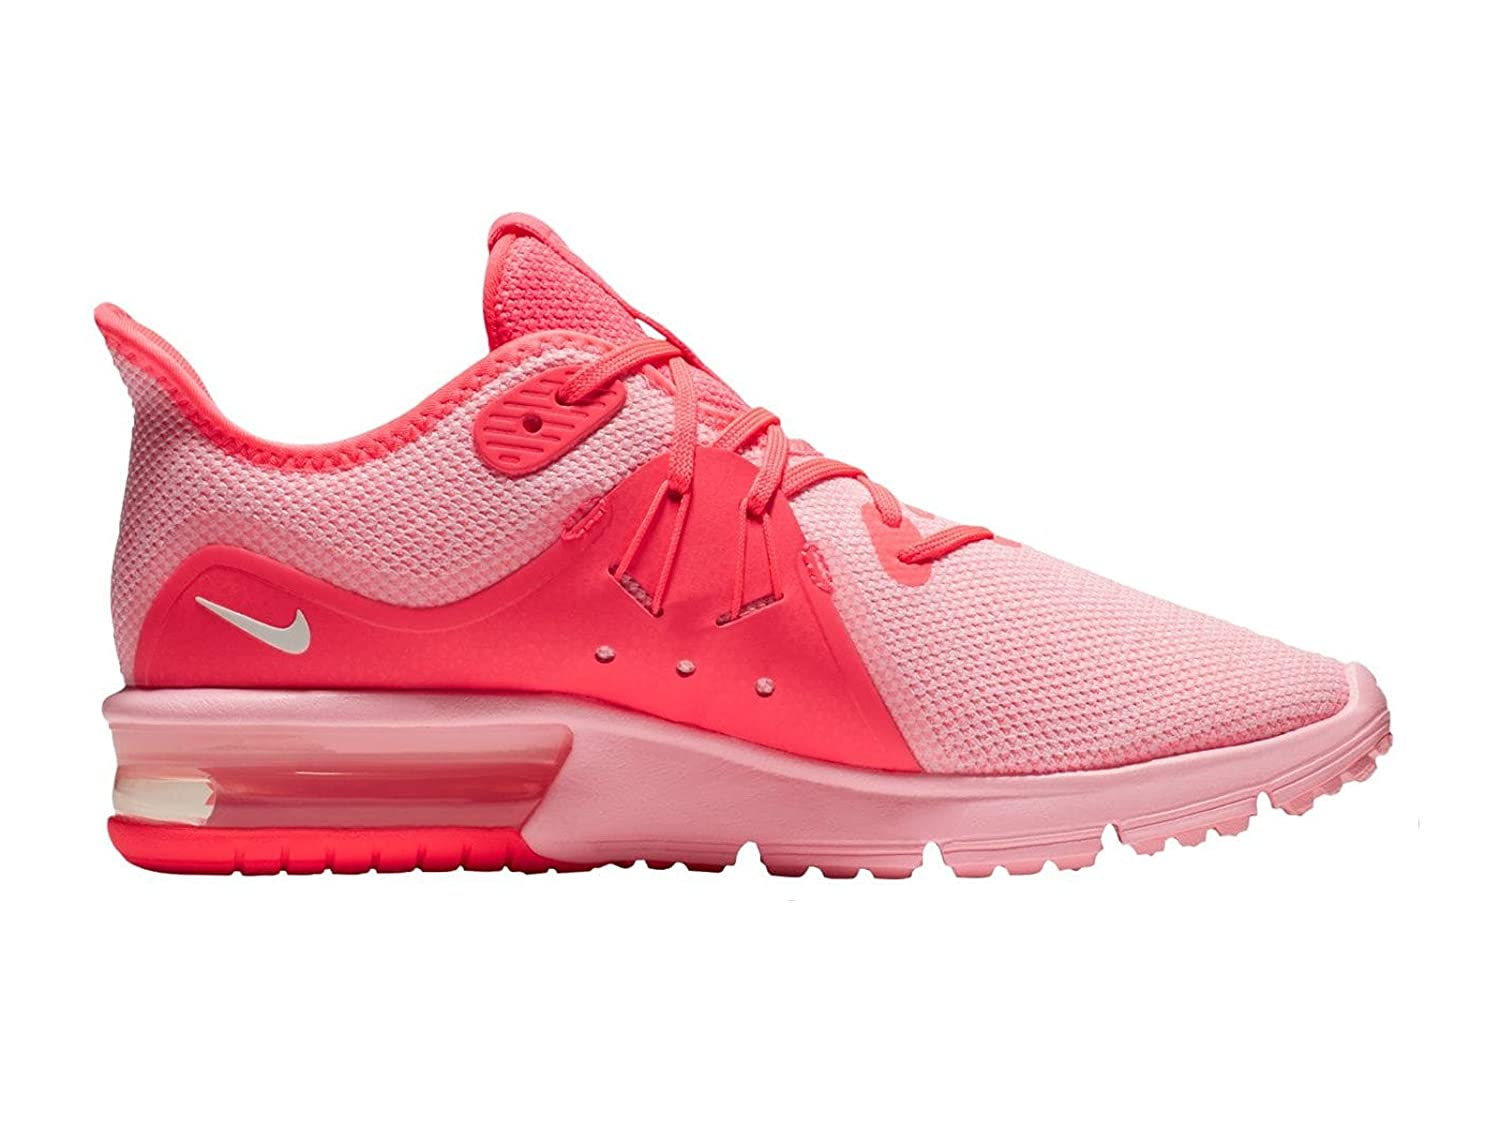 daa8f9bfab08 Amazon.com  NIKE Women s Air Max Sequent 3 Hot Punch Summit White Arctic  Punch Nylon Running Shoes 6 B(M) US  Shoes